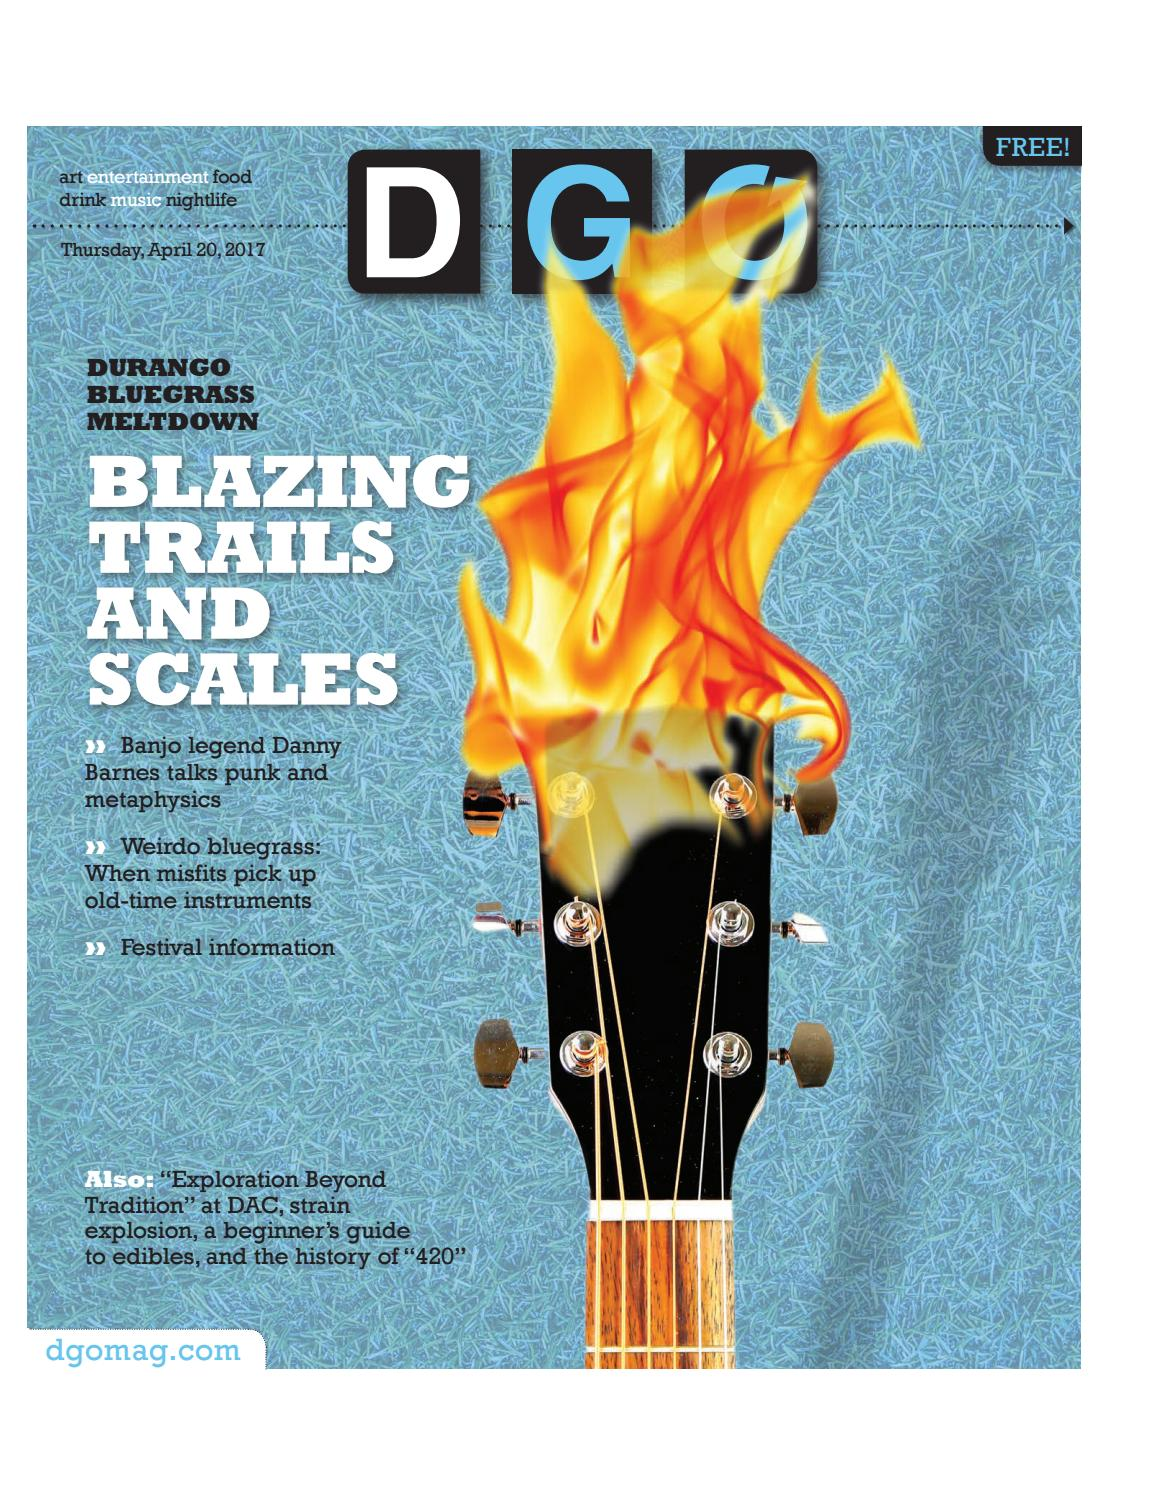 Durango Bluegrass Meltdown Blazing Trails and Scales by